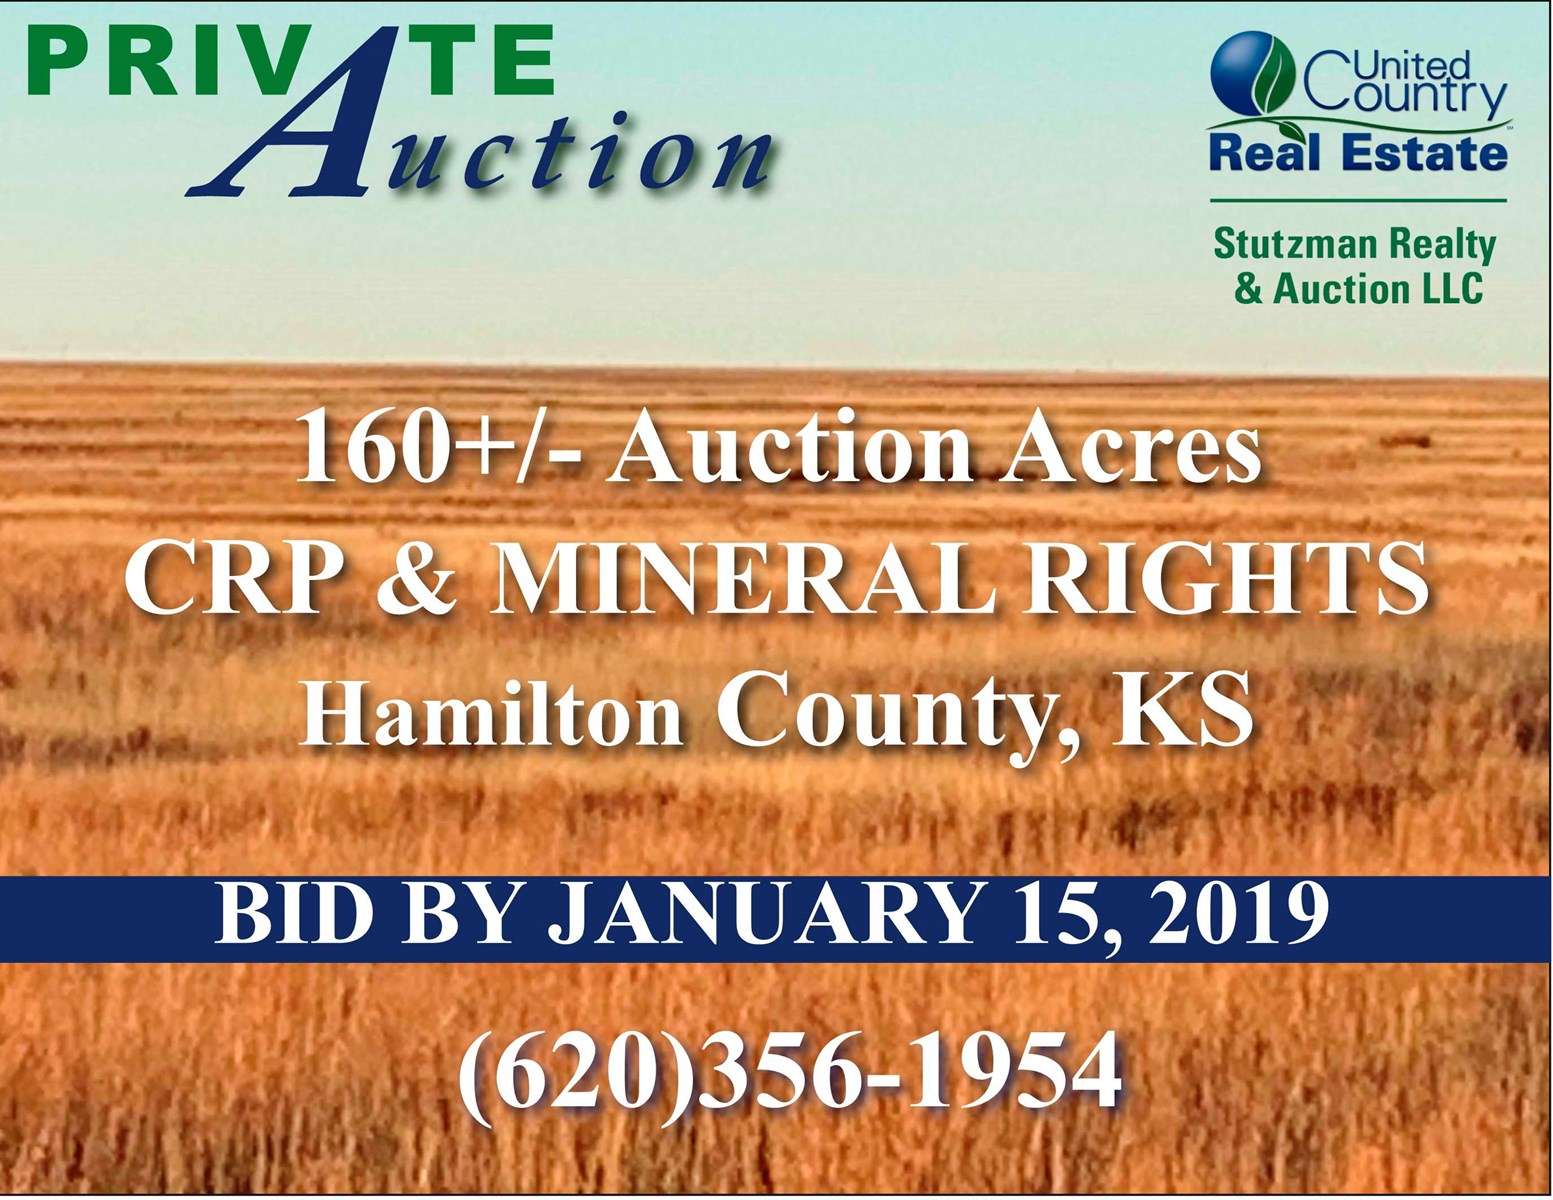 HAMILTON COUNTY, KS - 160+/- ACRES OF CRP & MINERAL RIGHTS